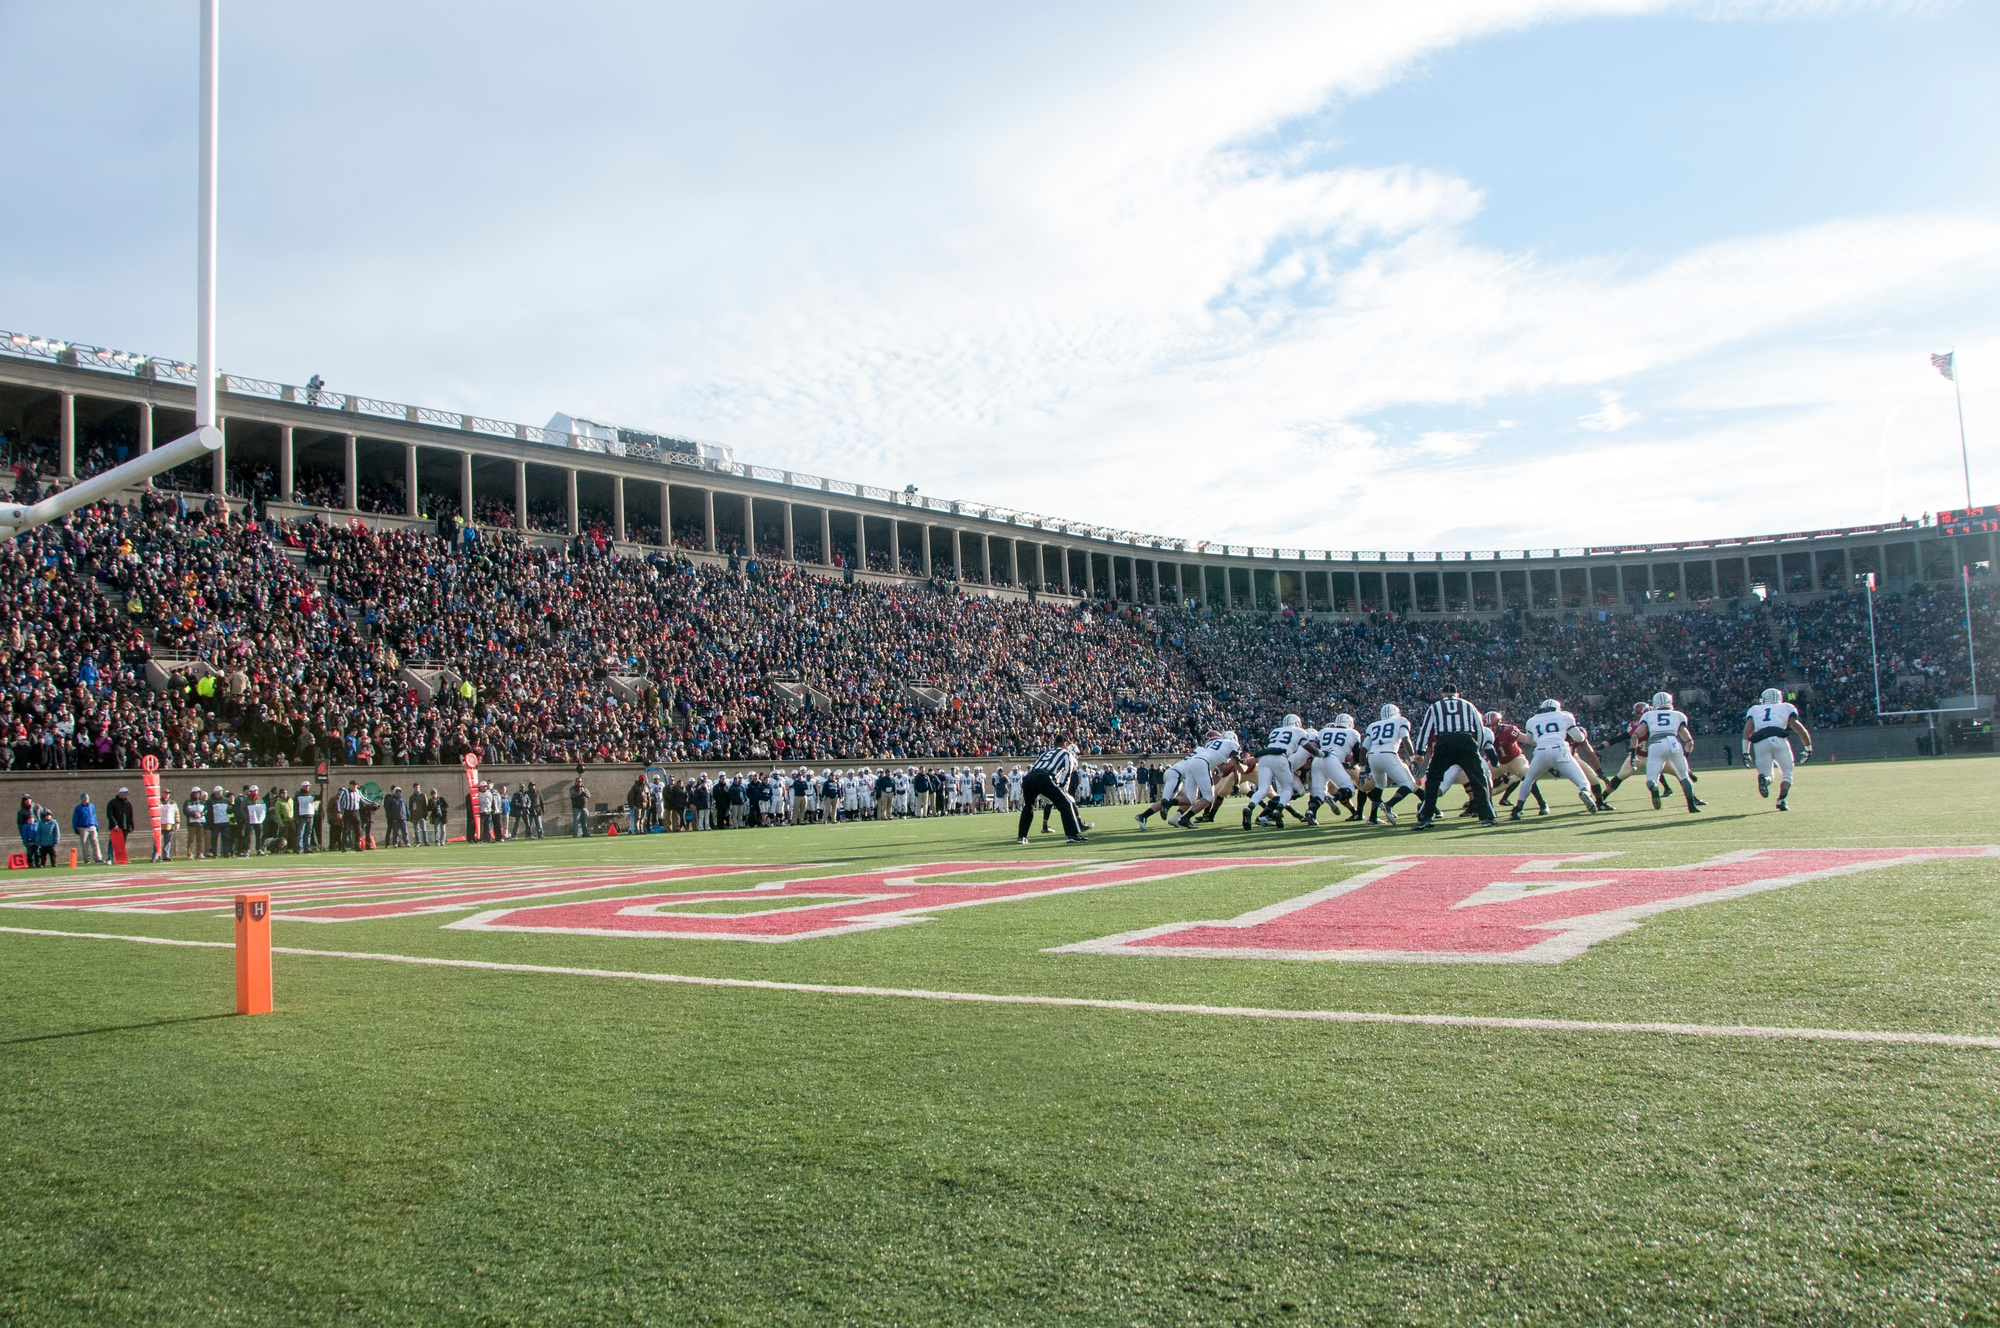 In Harvard-Yale 2014, which was held at Harvard Stadium on Nov. 22, Crimson junior defensive back Scott Peters intercepted Bulldogs quarterback Morgan Roberts' pass with 10 seconds remaining to seal the win for Harvard.